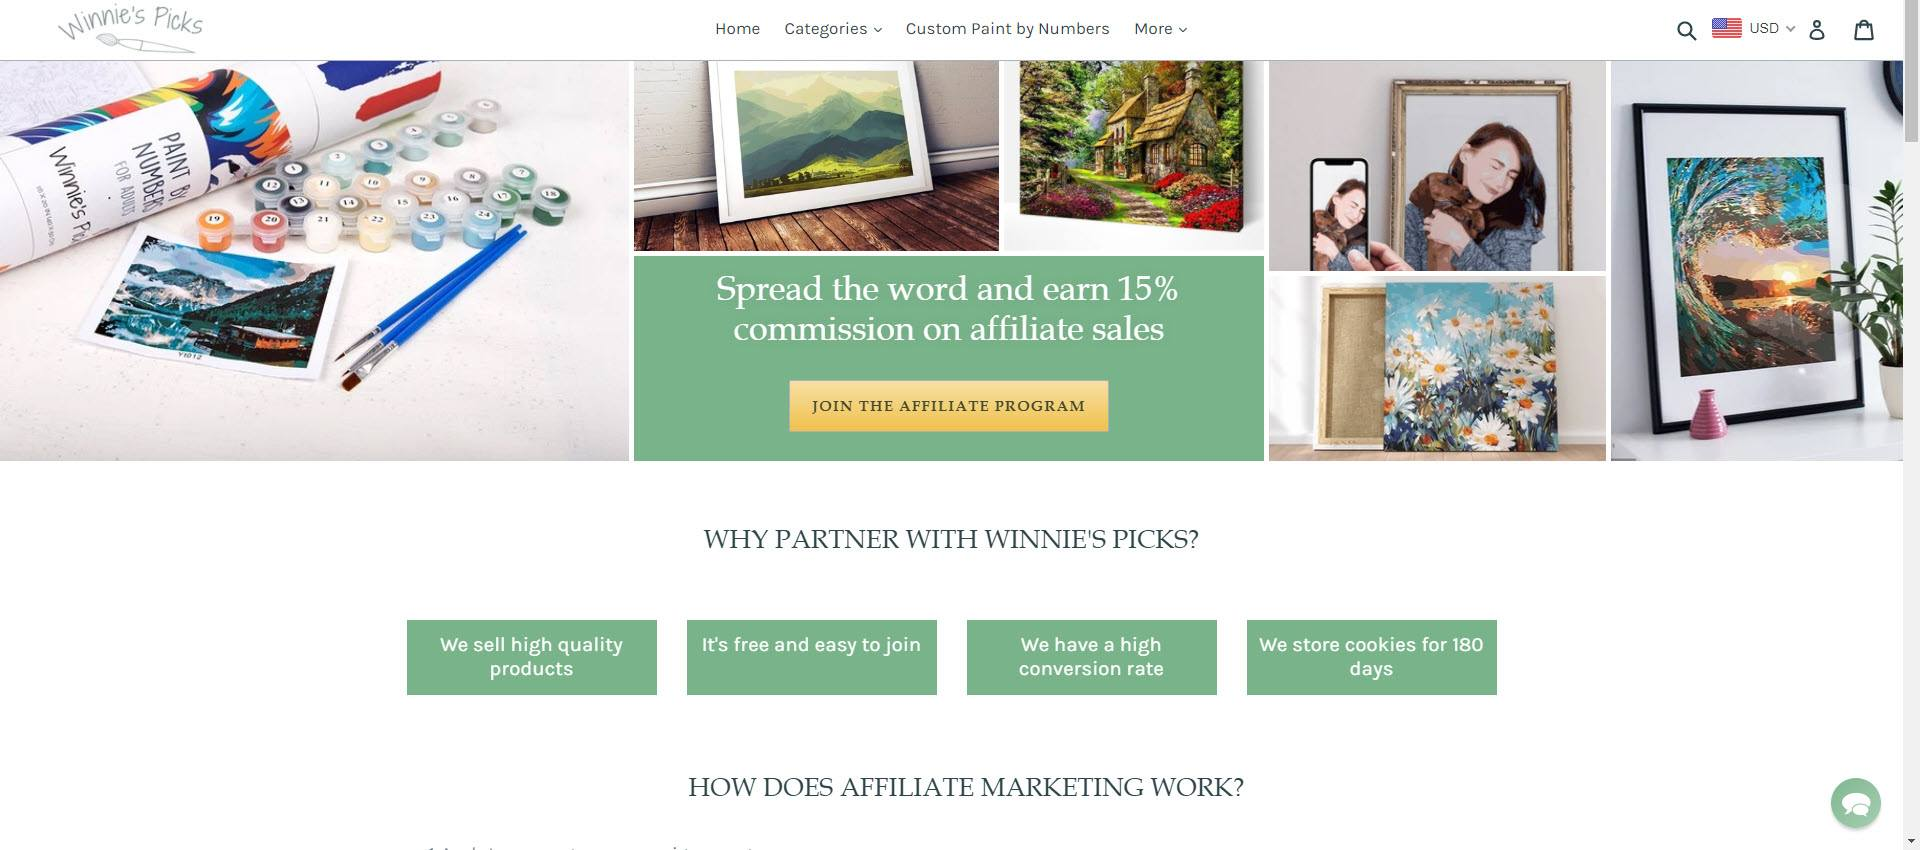 affiliate programs for painters - Winnies picks affiliate